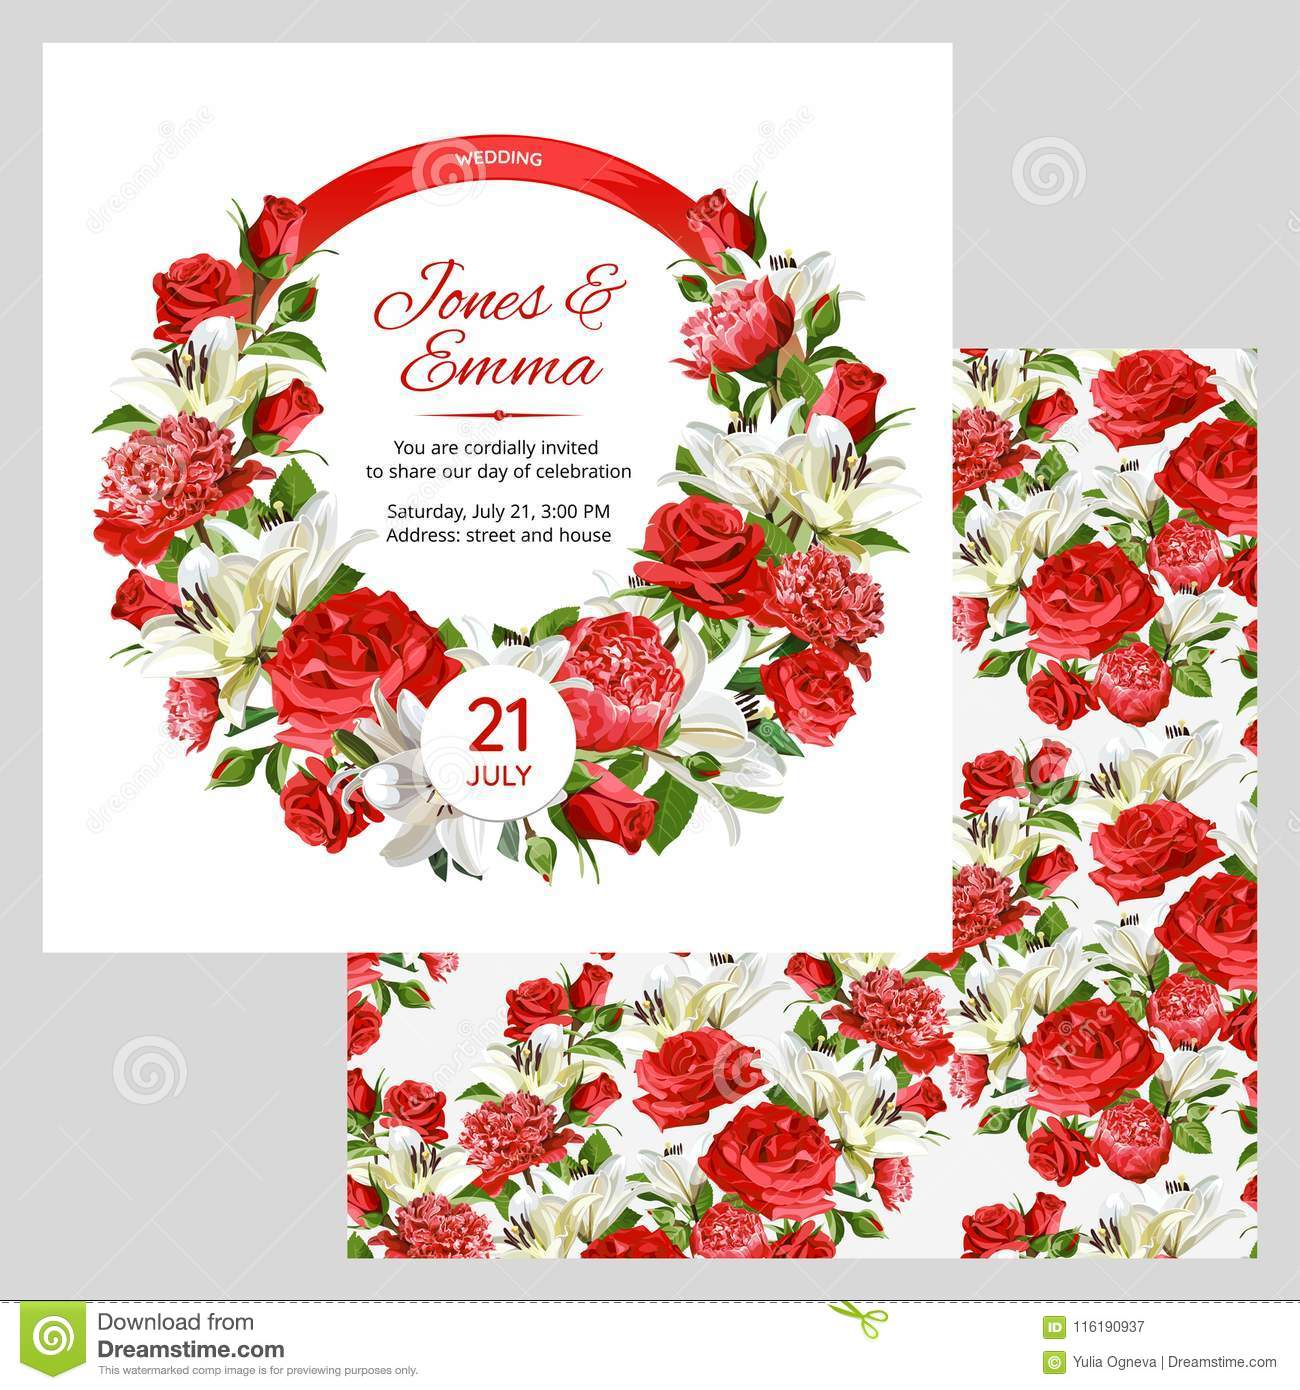 Cover Of Wedding Invitation And Seamless Pattern. Red Roses, Peonies ...